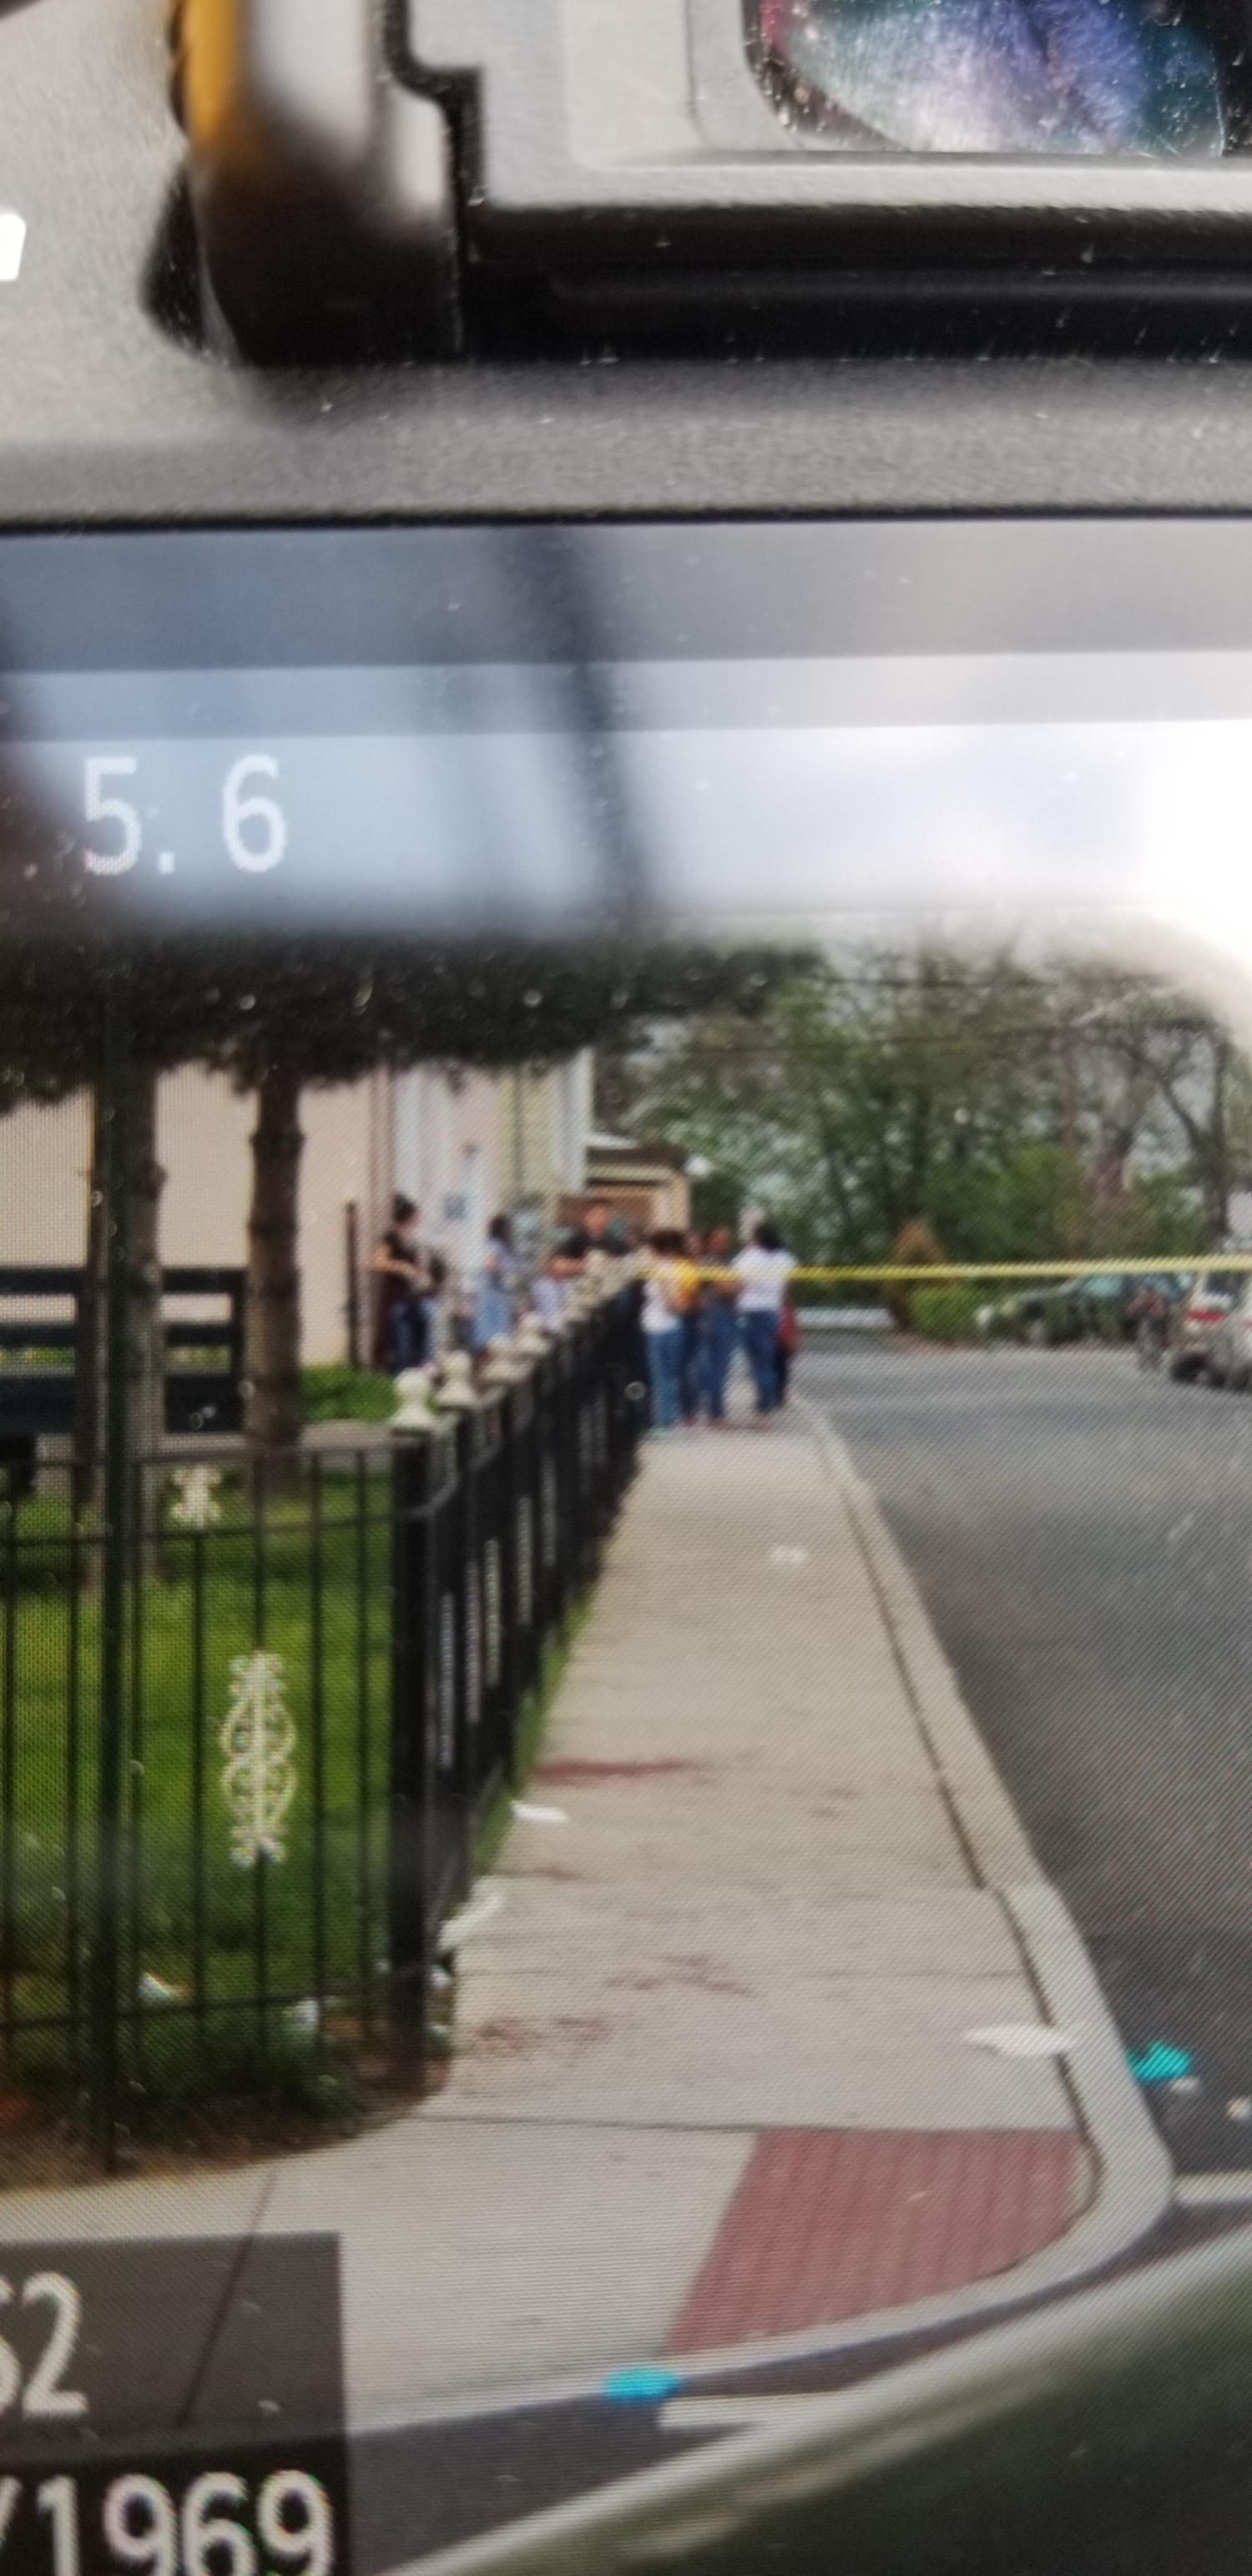 Double-stabbing on Main St. in Haverstraw